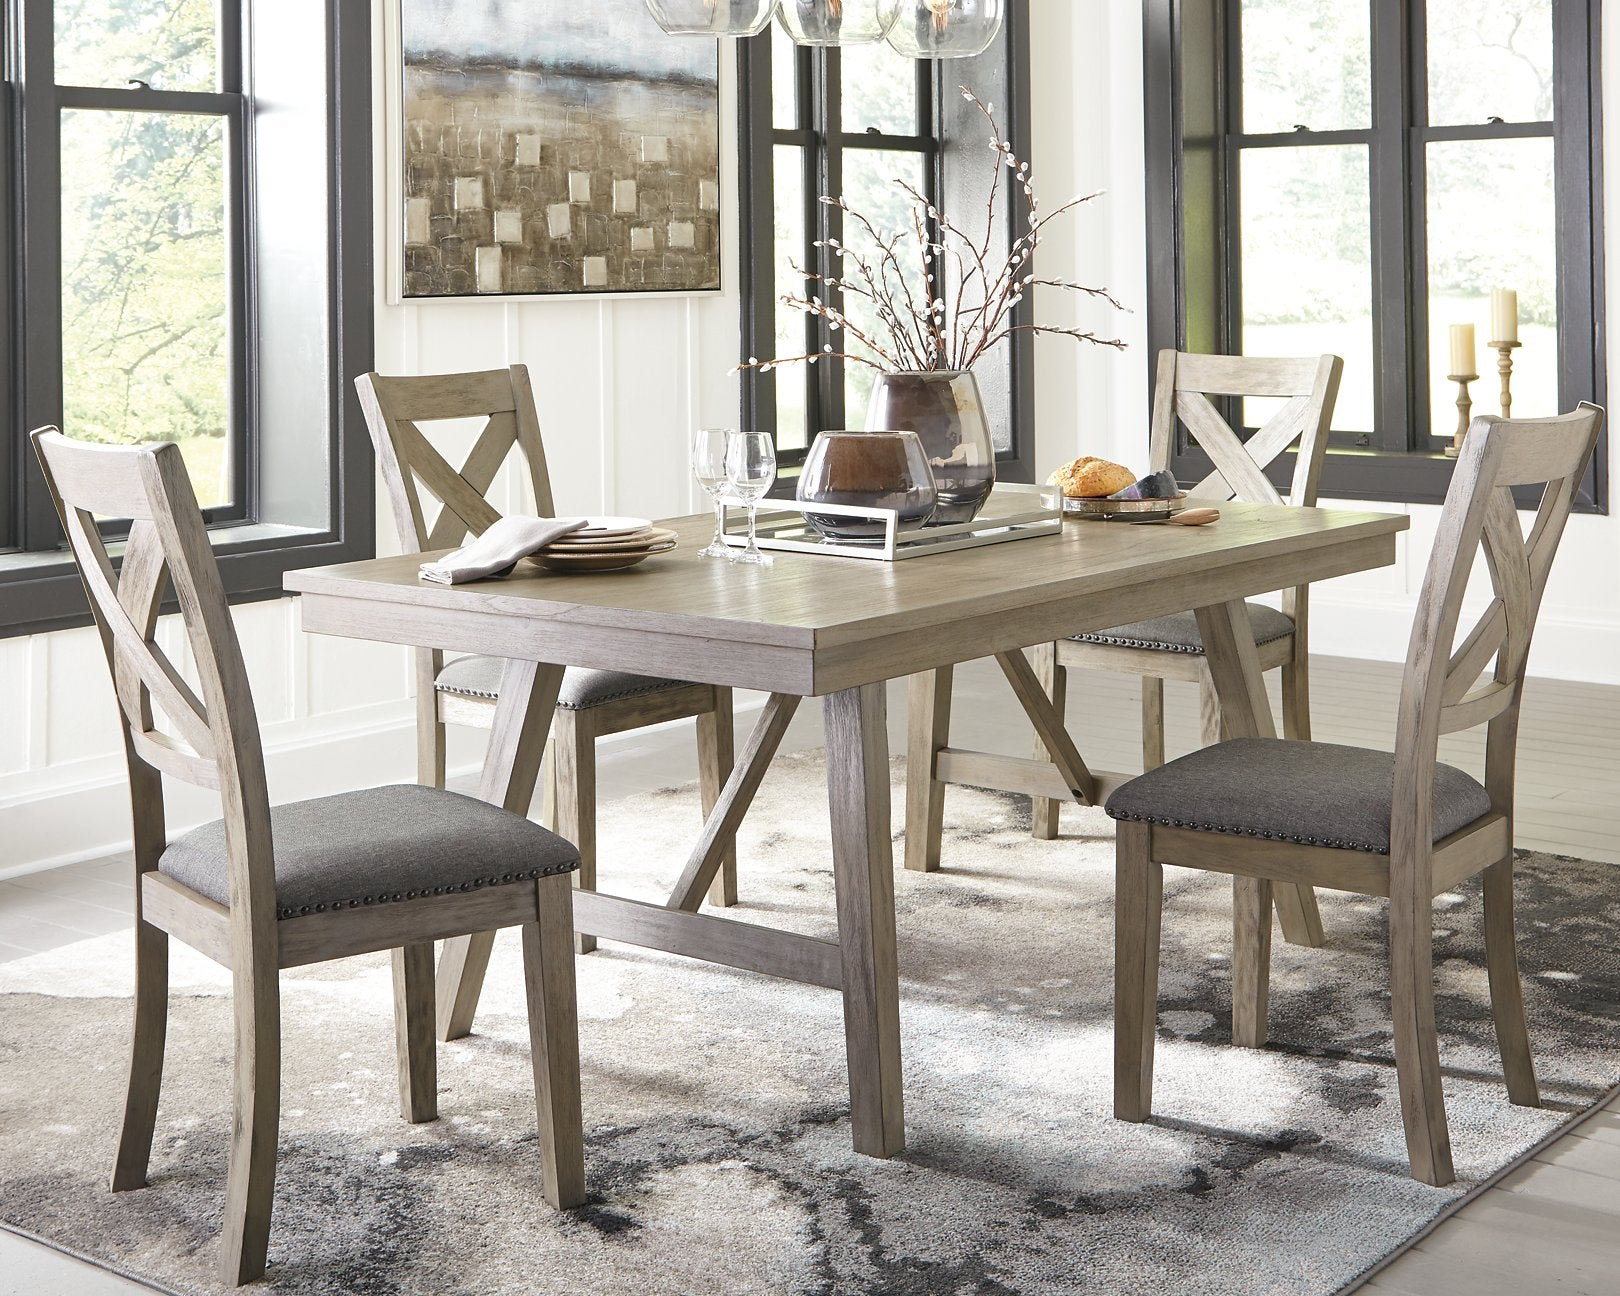 Aldwin Signature Design by Ashley Dining Table